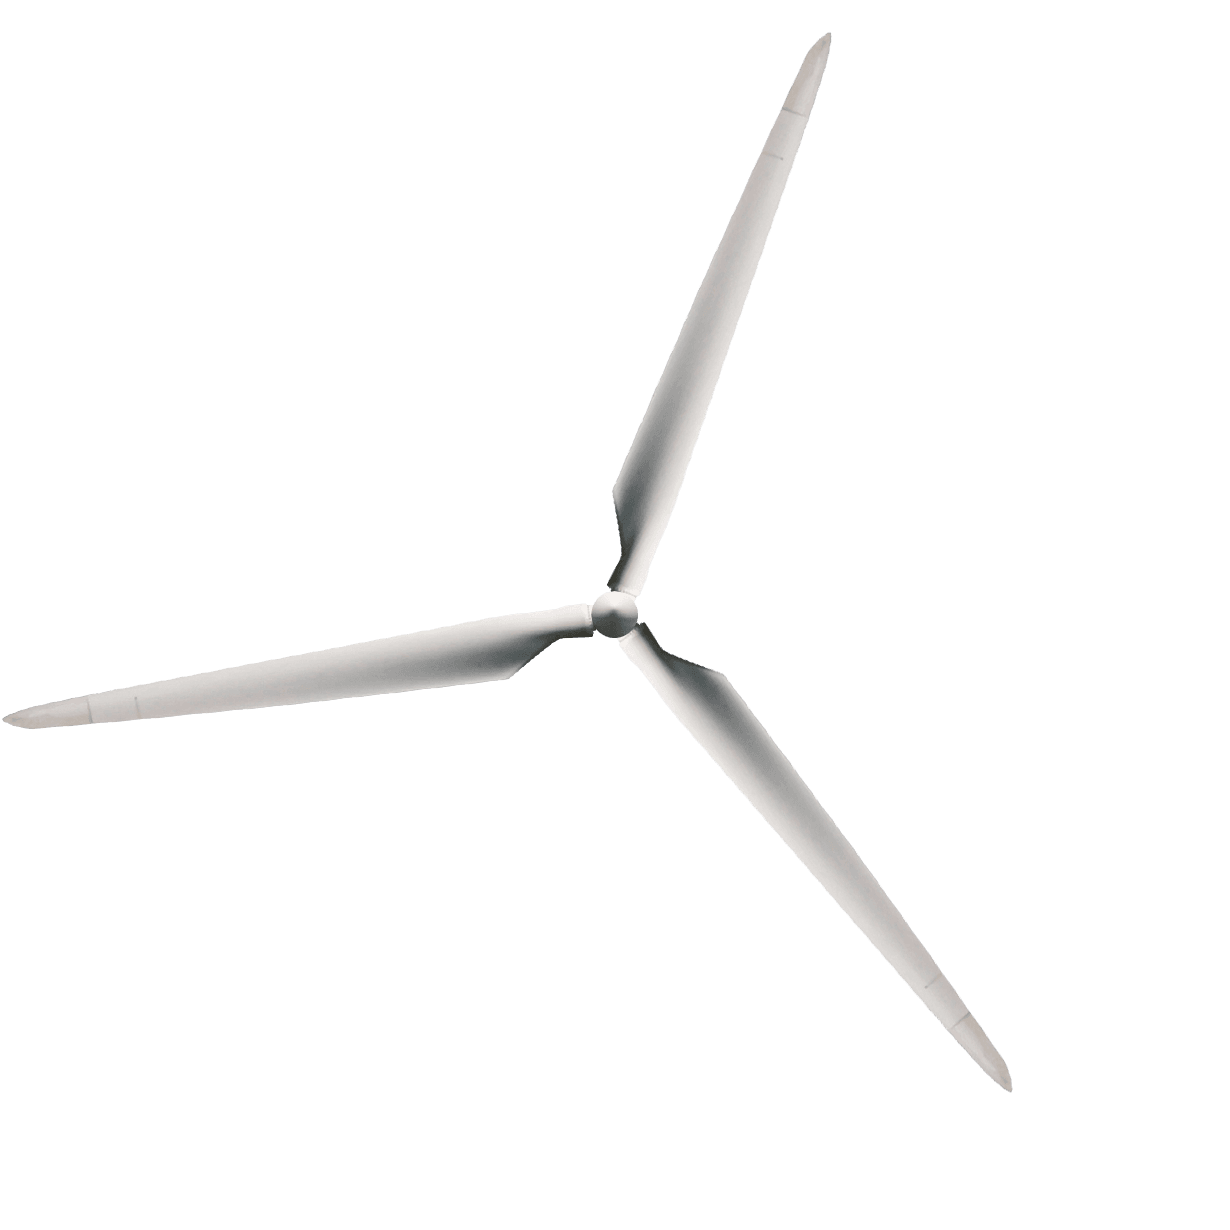 Wind turbine blades png. Yes to power